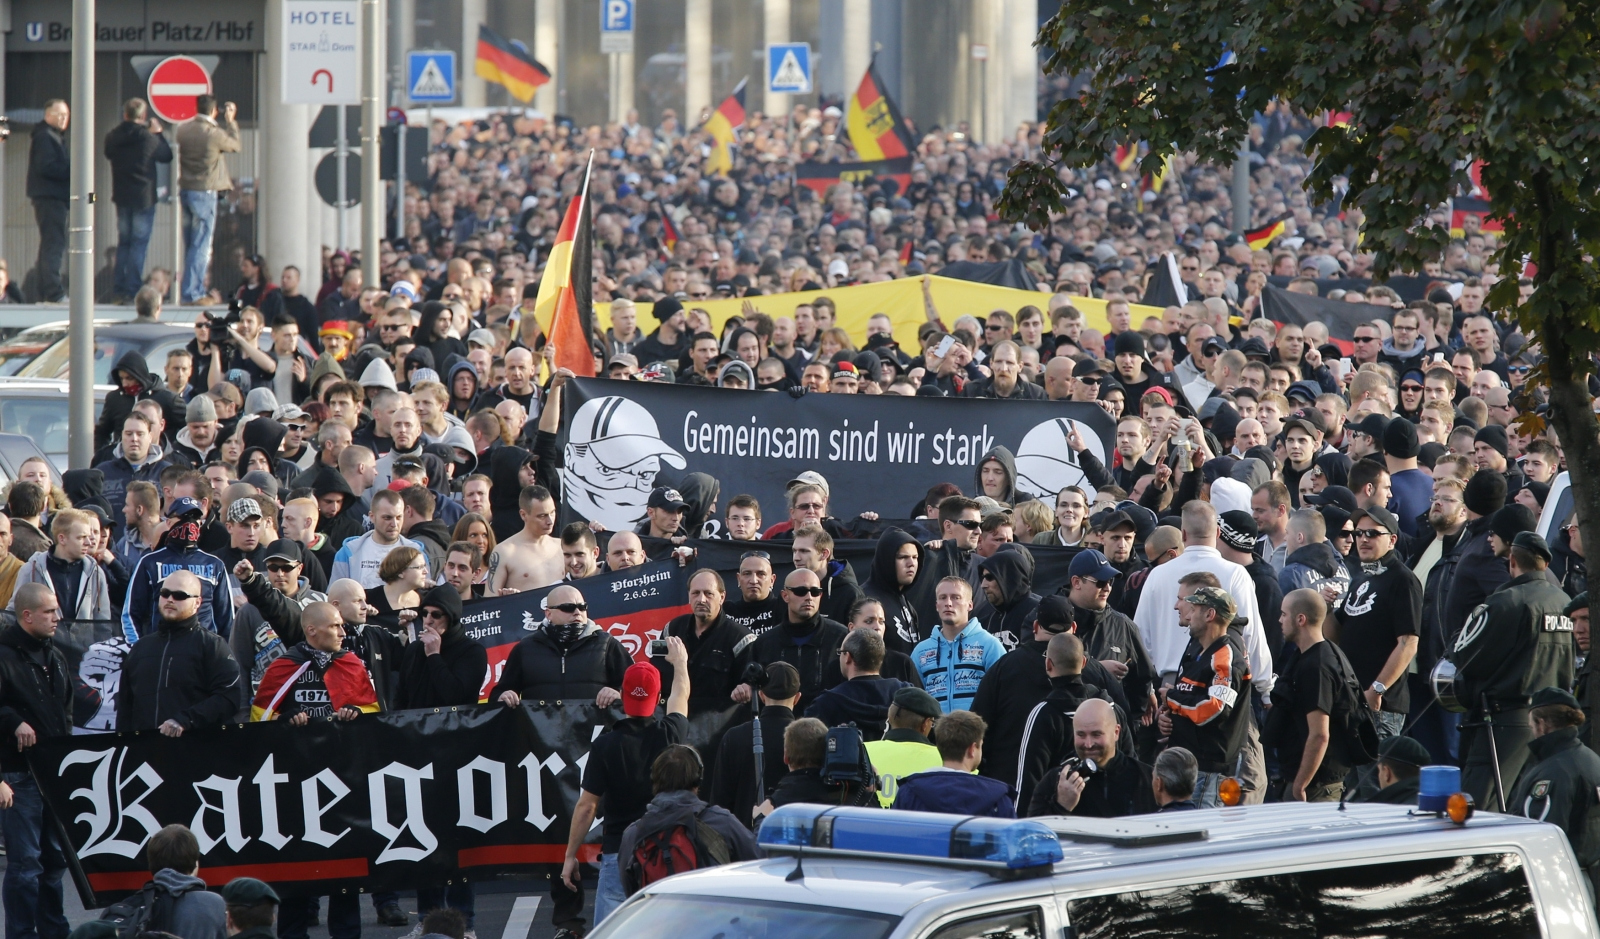 hooligans against Salafists and Islamic State extremist Cologne